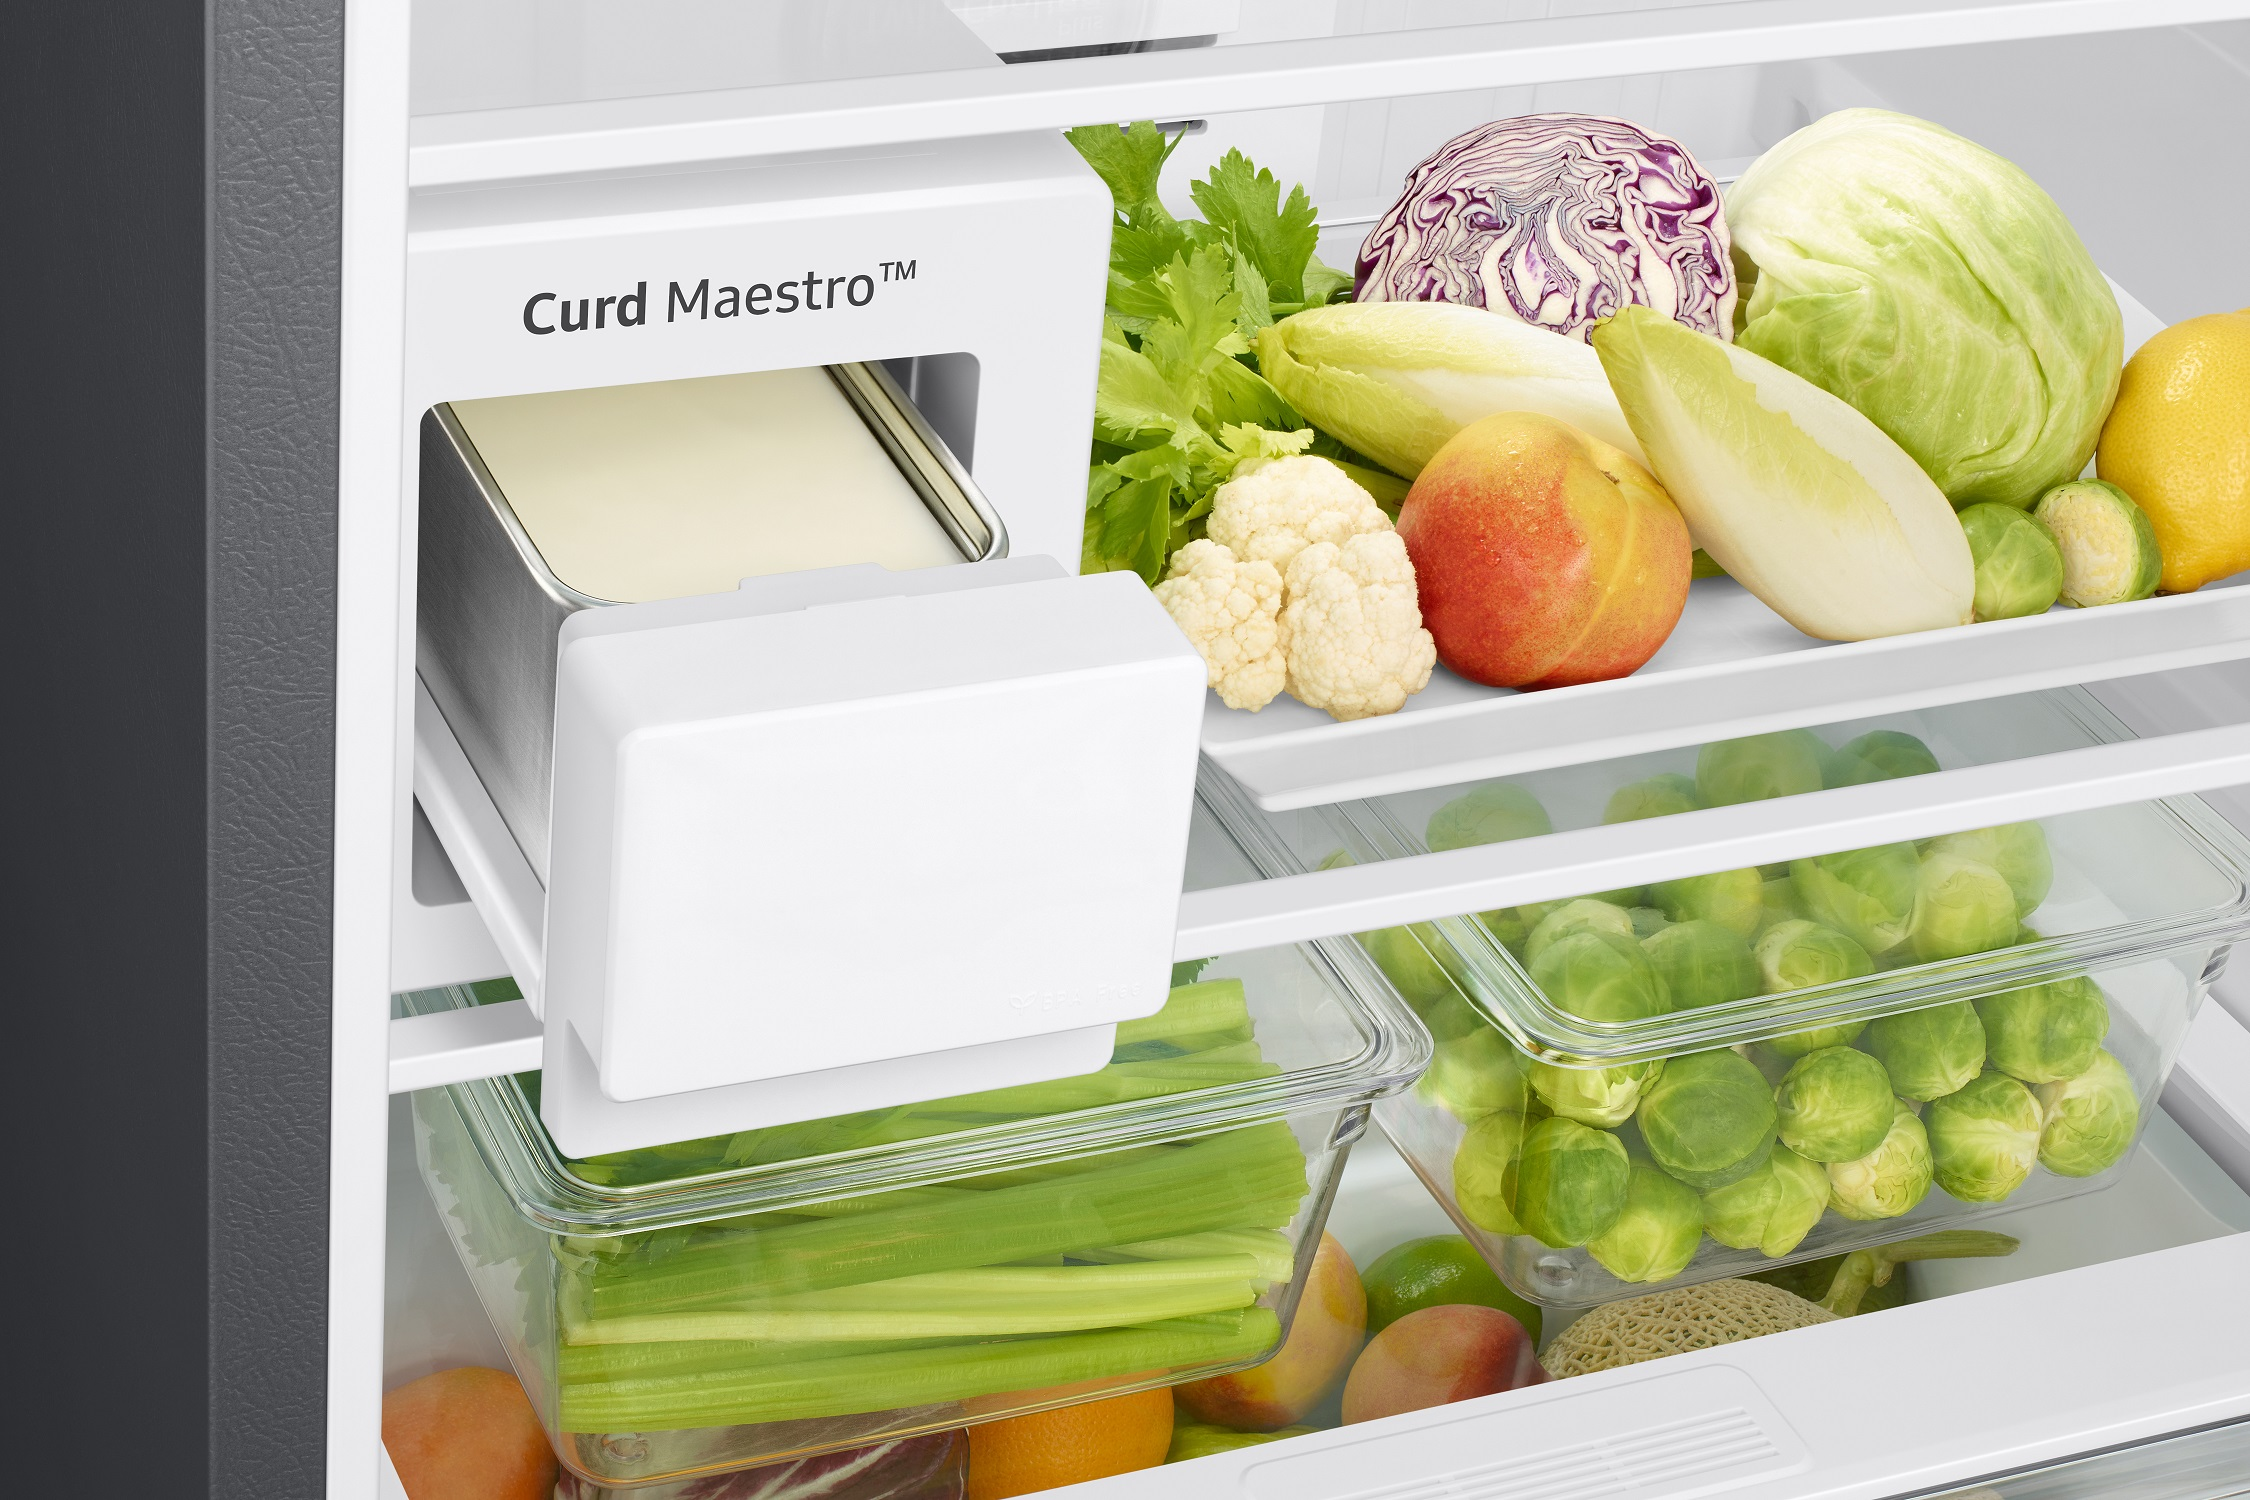 Samsung launches new Curd Maestro refrigerator options